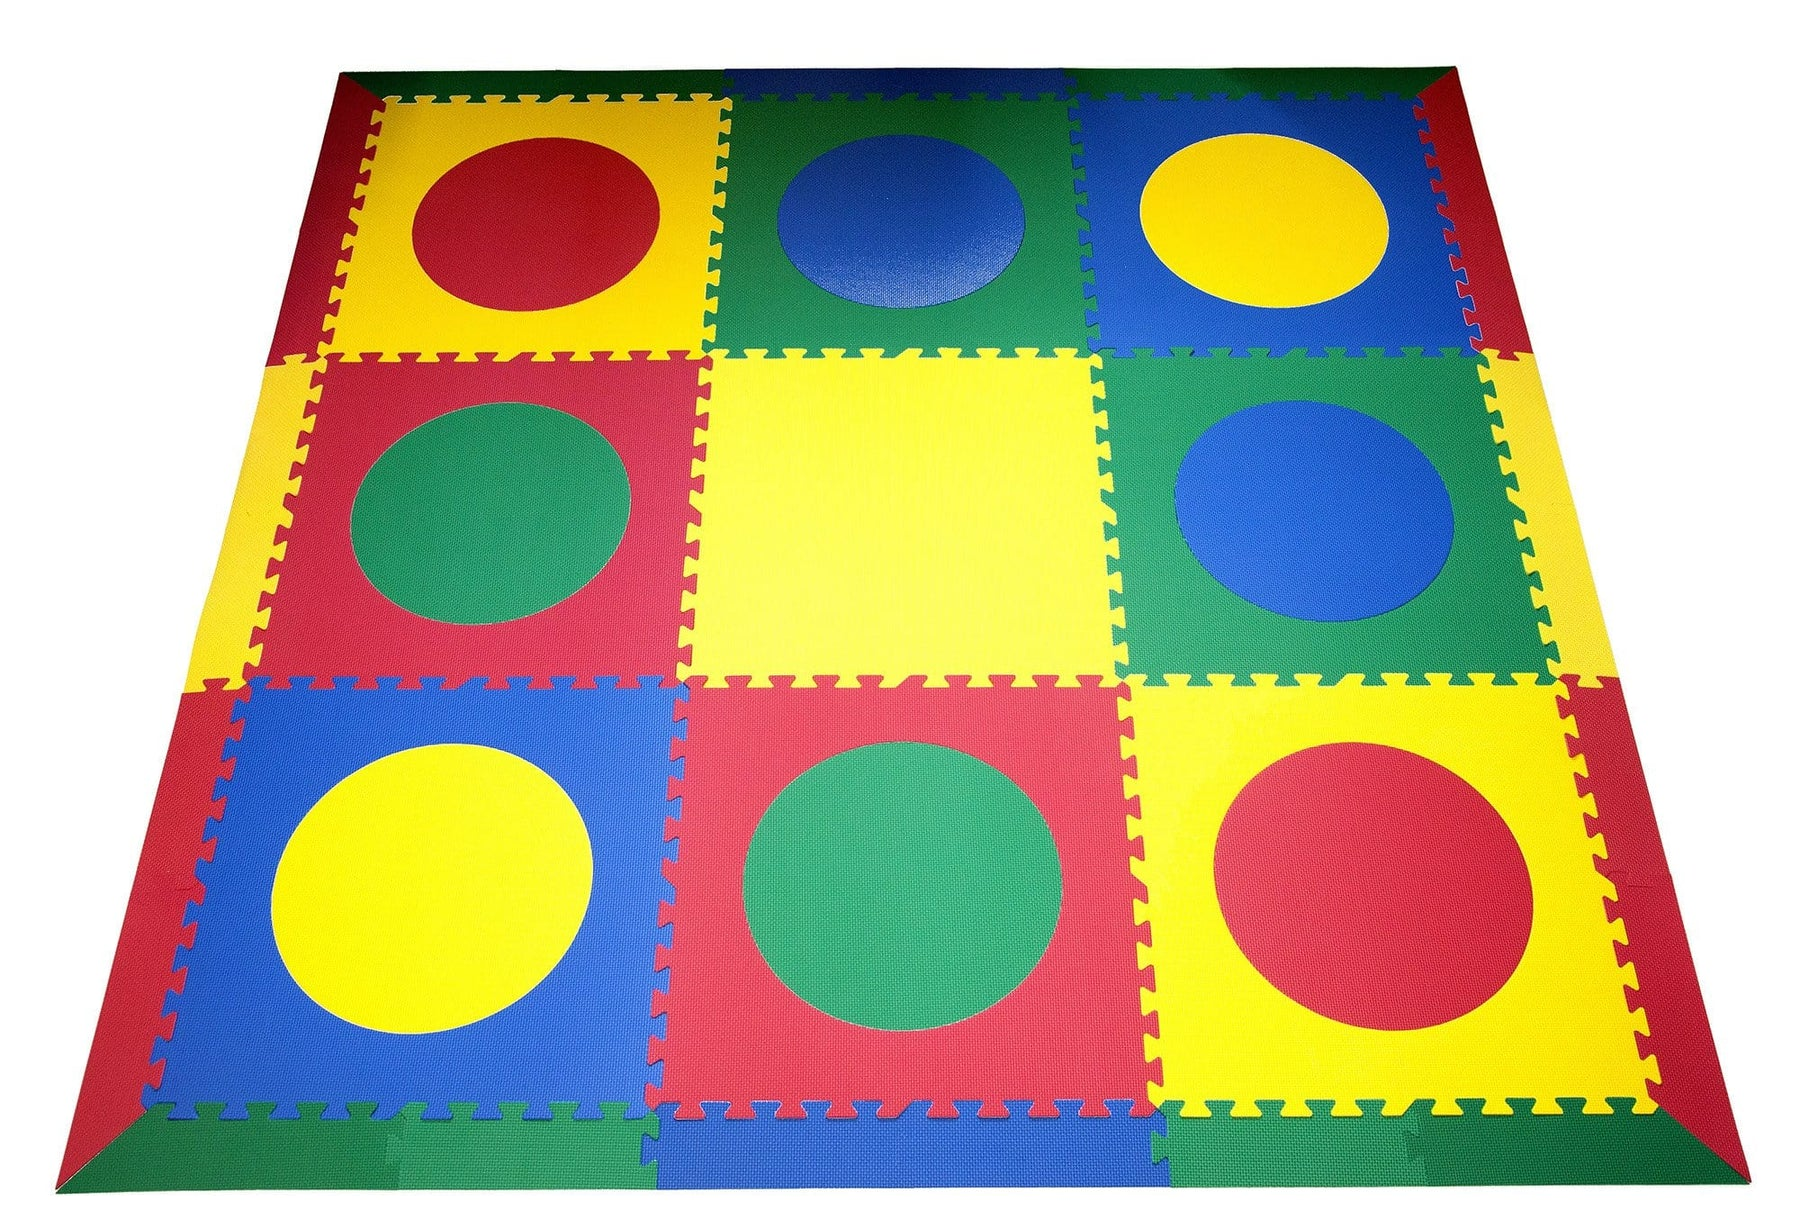 SoftTiles Circles Children's Foam Play Mat (6.5 x 6.5 feet) Red, Yellow, Blue, Green